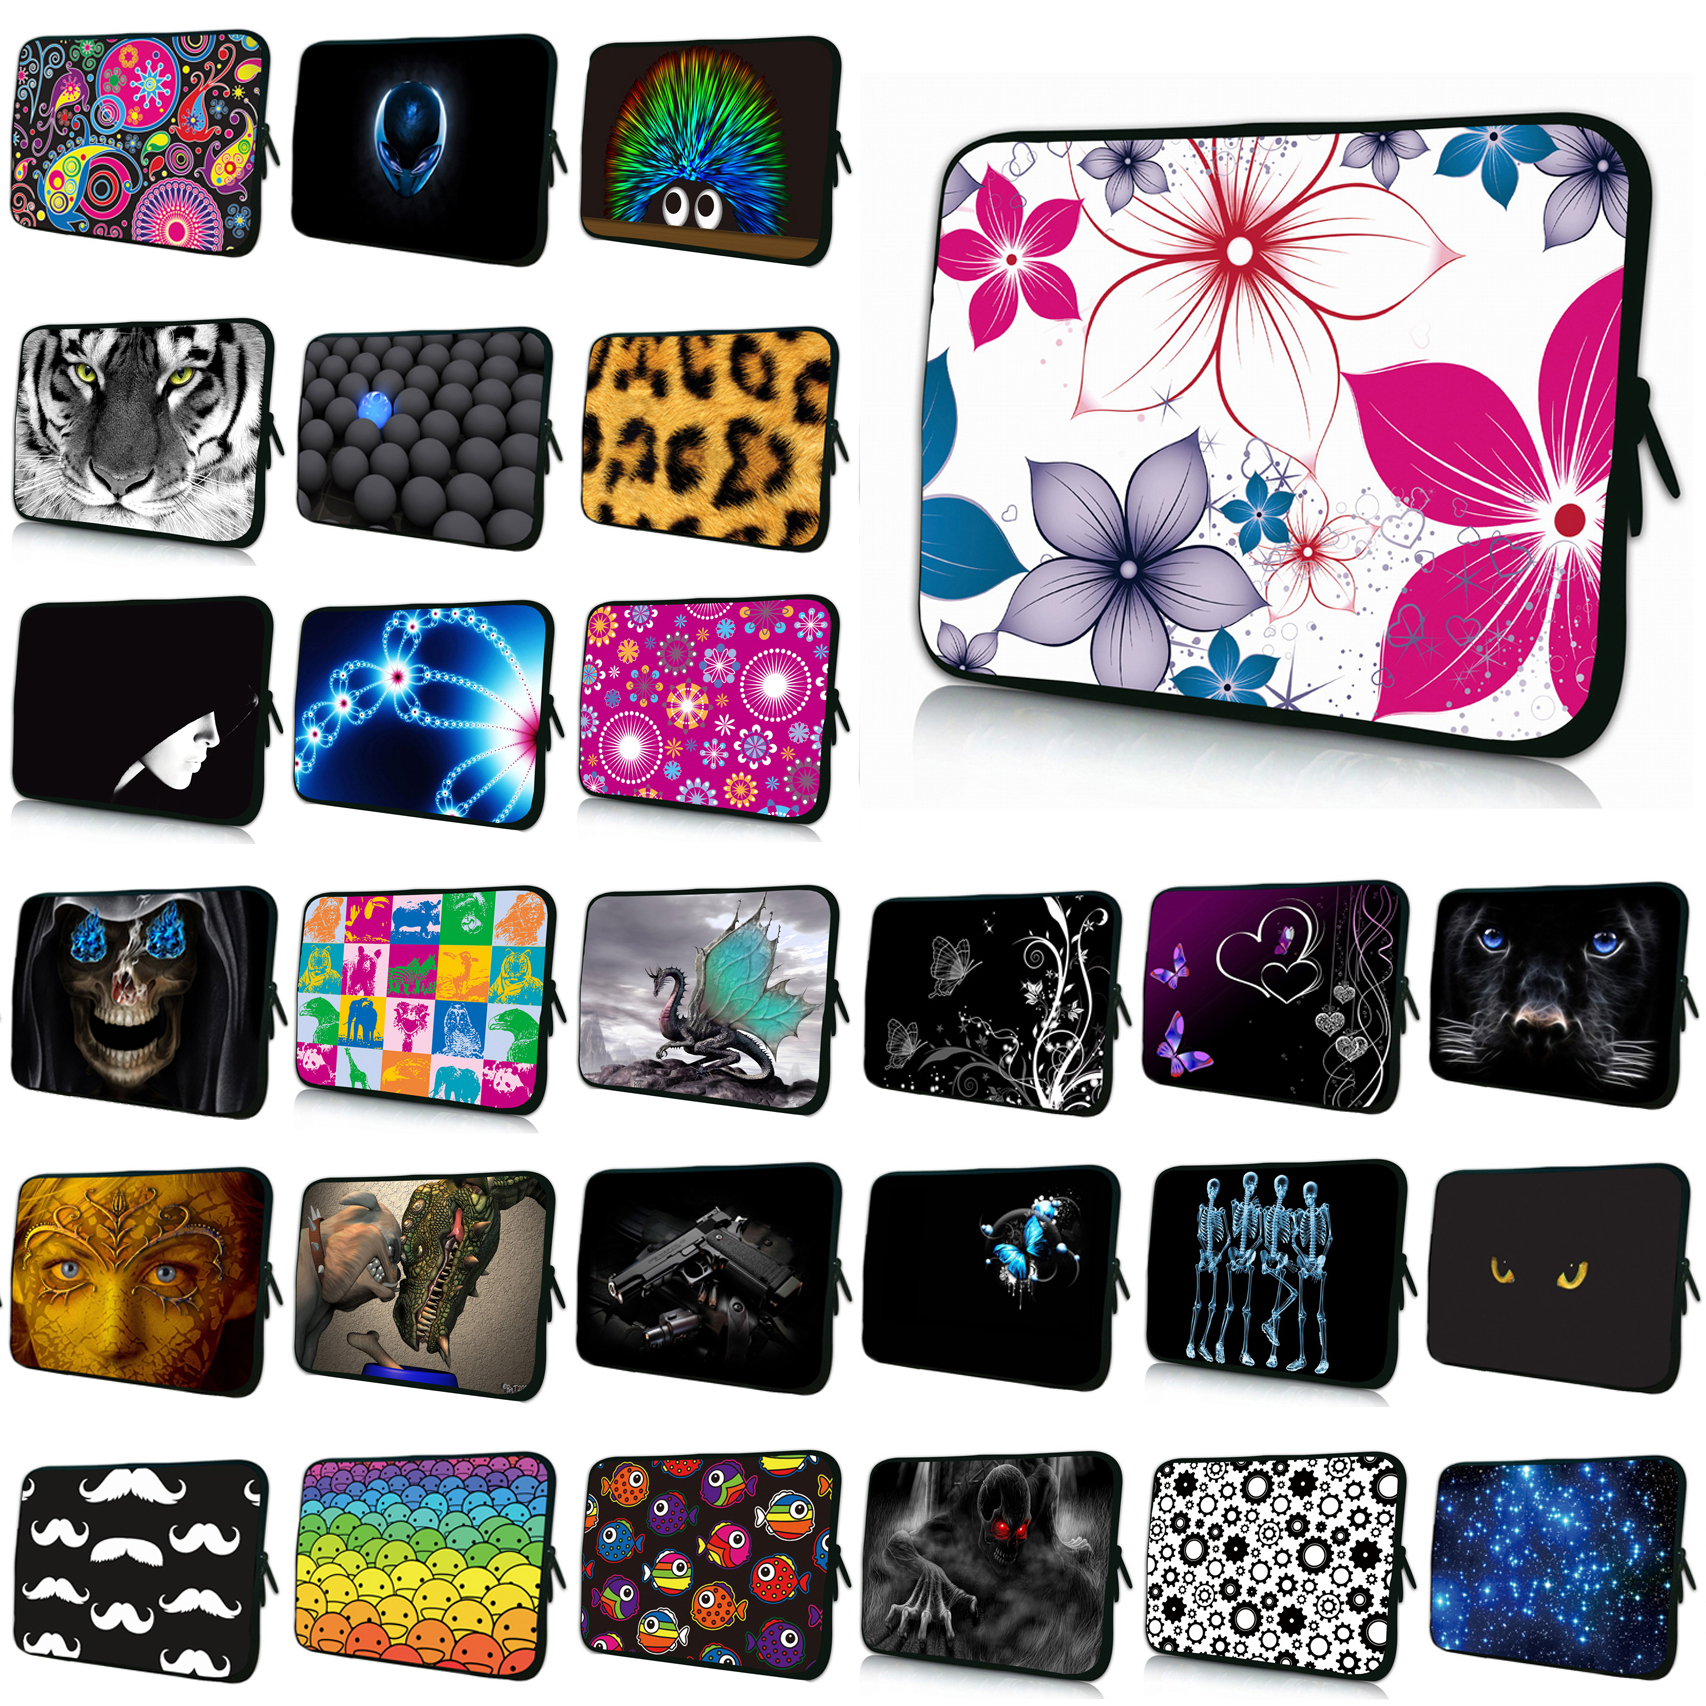 Elegant Flower 13 Notebook Neoprene Liner Sleeve Case Laptops Pouch Cover Bags For Women 12.9 13.3 Tablet Protector Shell Bag